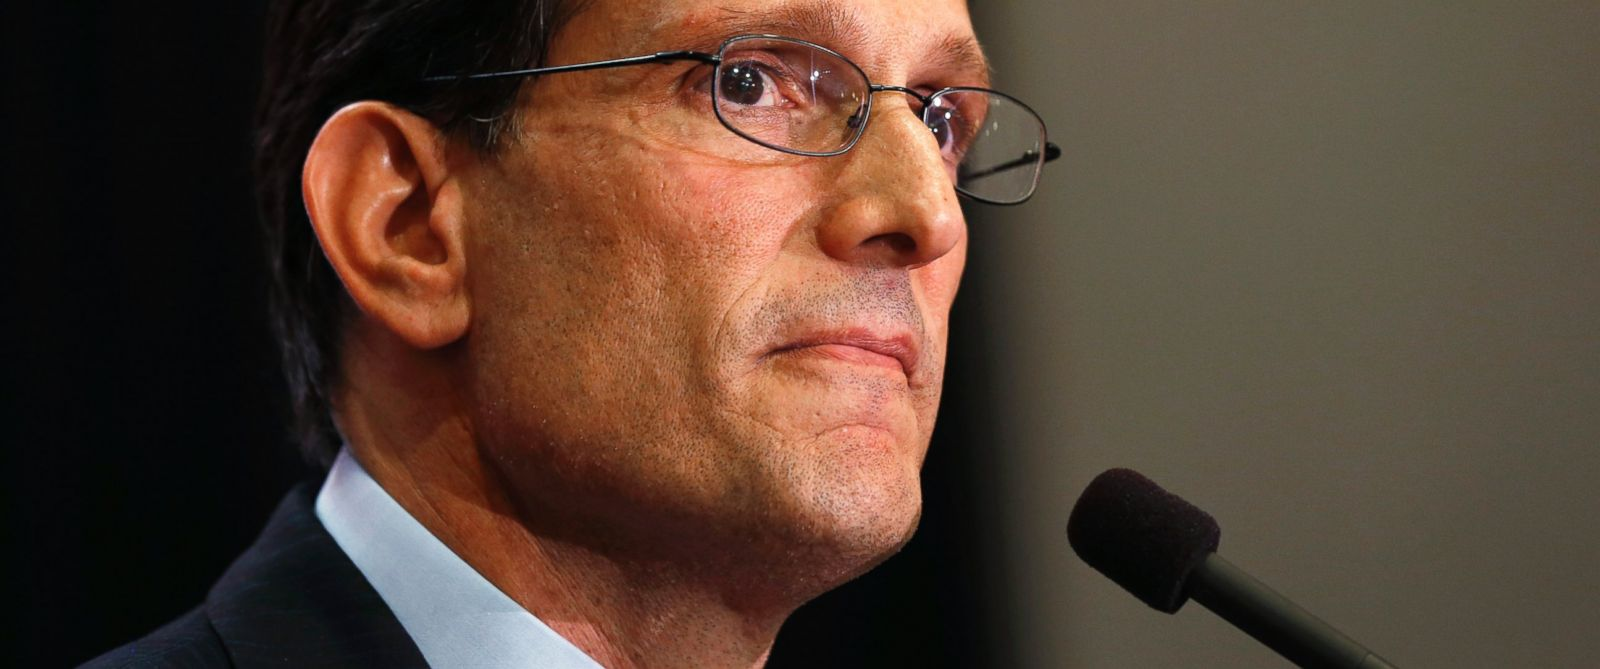 PHOTO: House Majority Leader Eric Cantor delivers a concession speech in Richmond, Va., June 10, 2014. Cantor lost in the GOP primary to tea party candidate Dave Brat.